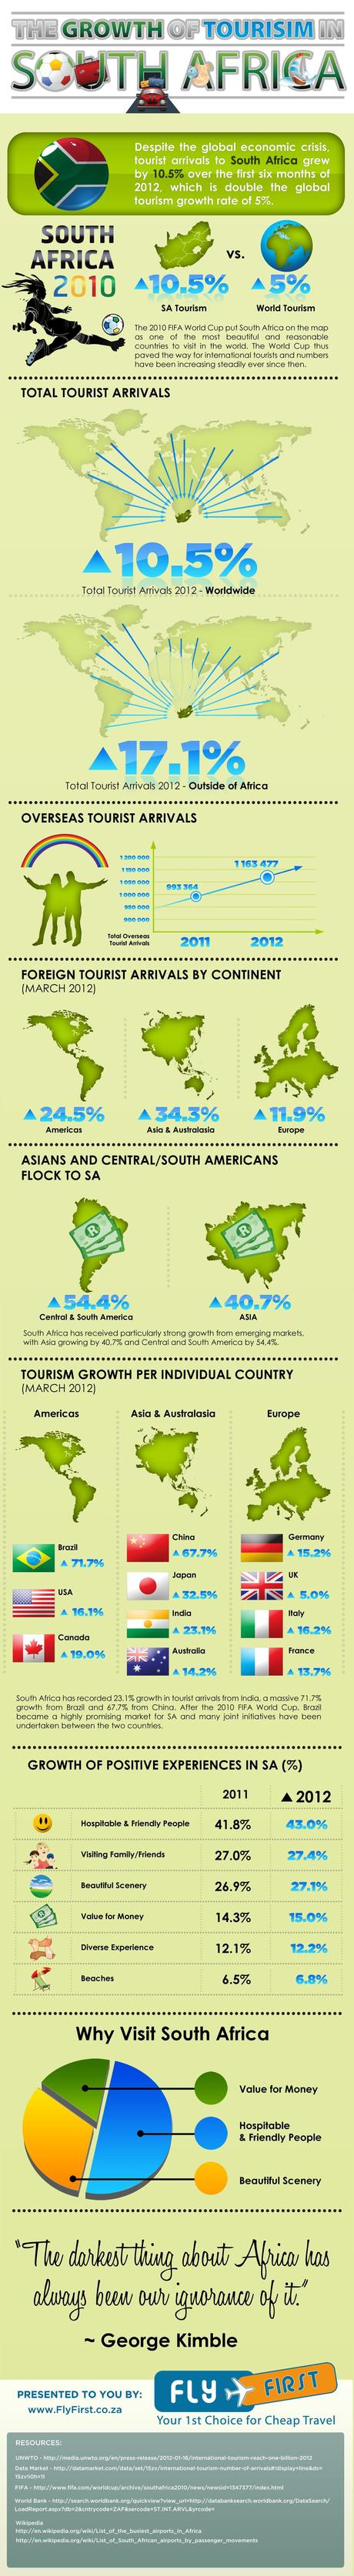 South Africa Tourism Trends Infographic